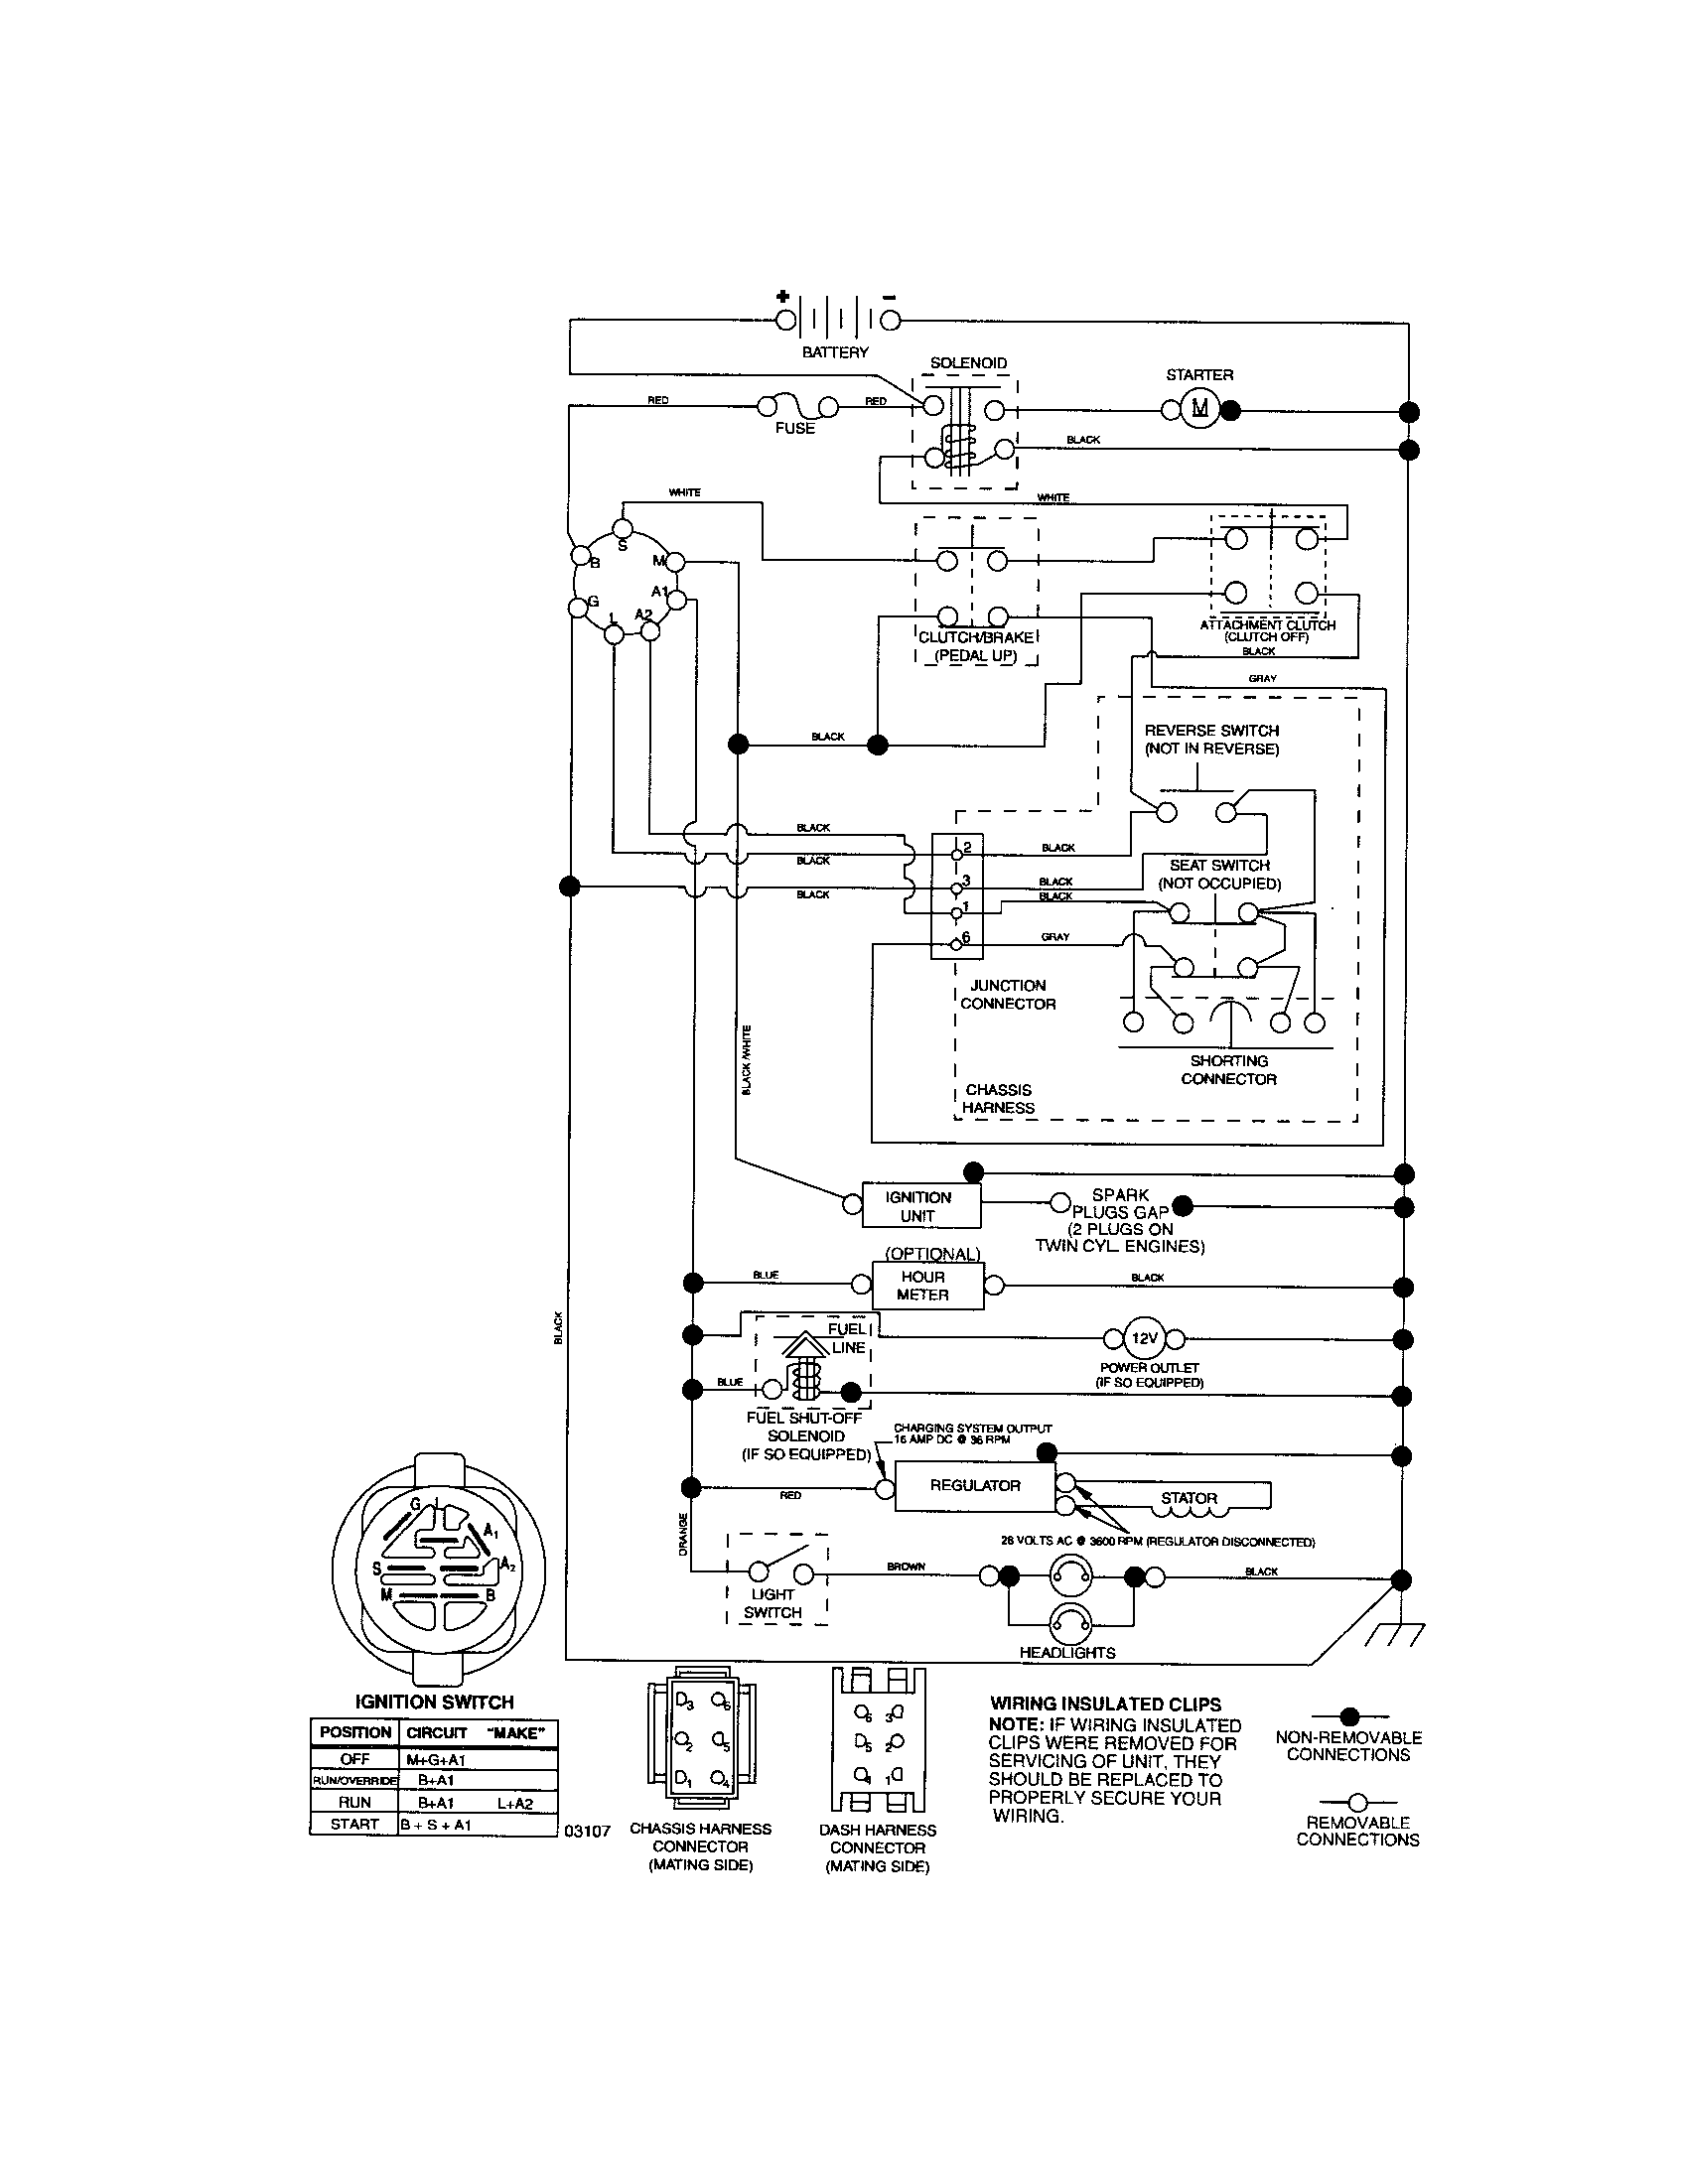 hight resolution of craftsman riding mower electrical diagram wiring diagram craftsman craftsman riding mower electrical diagram wiring diagram craftsman